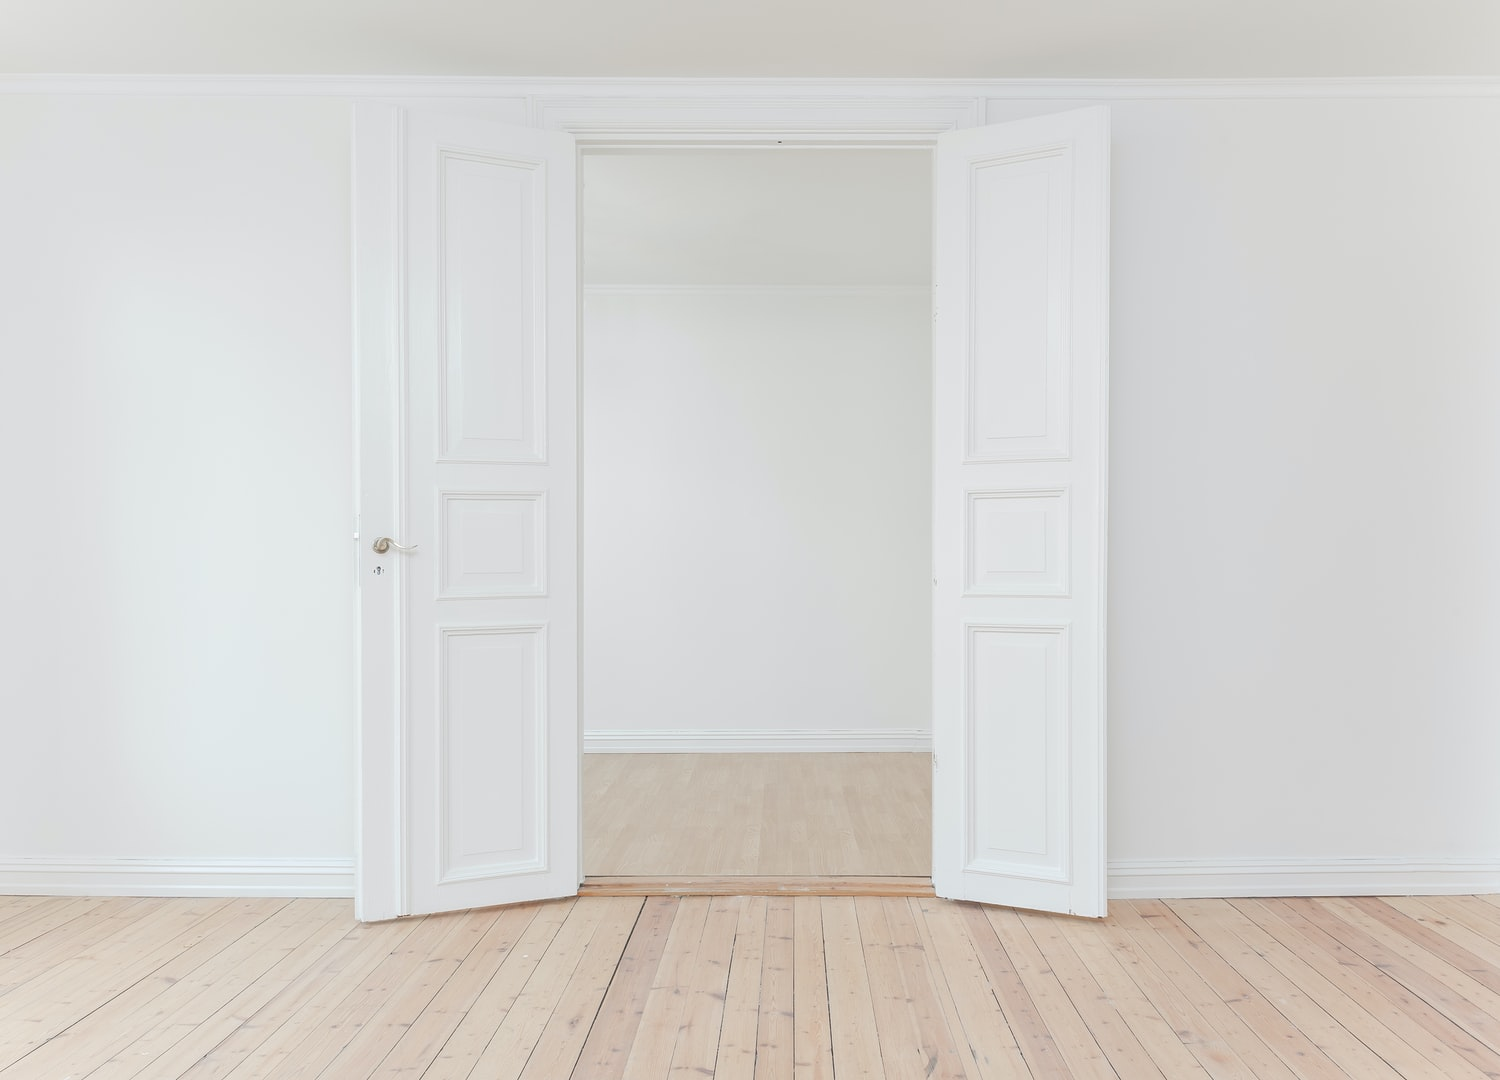 painted white room with double doors